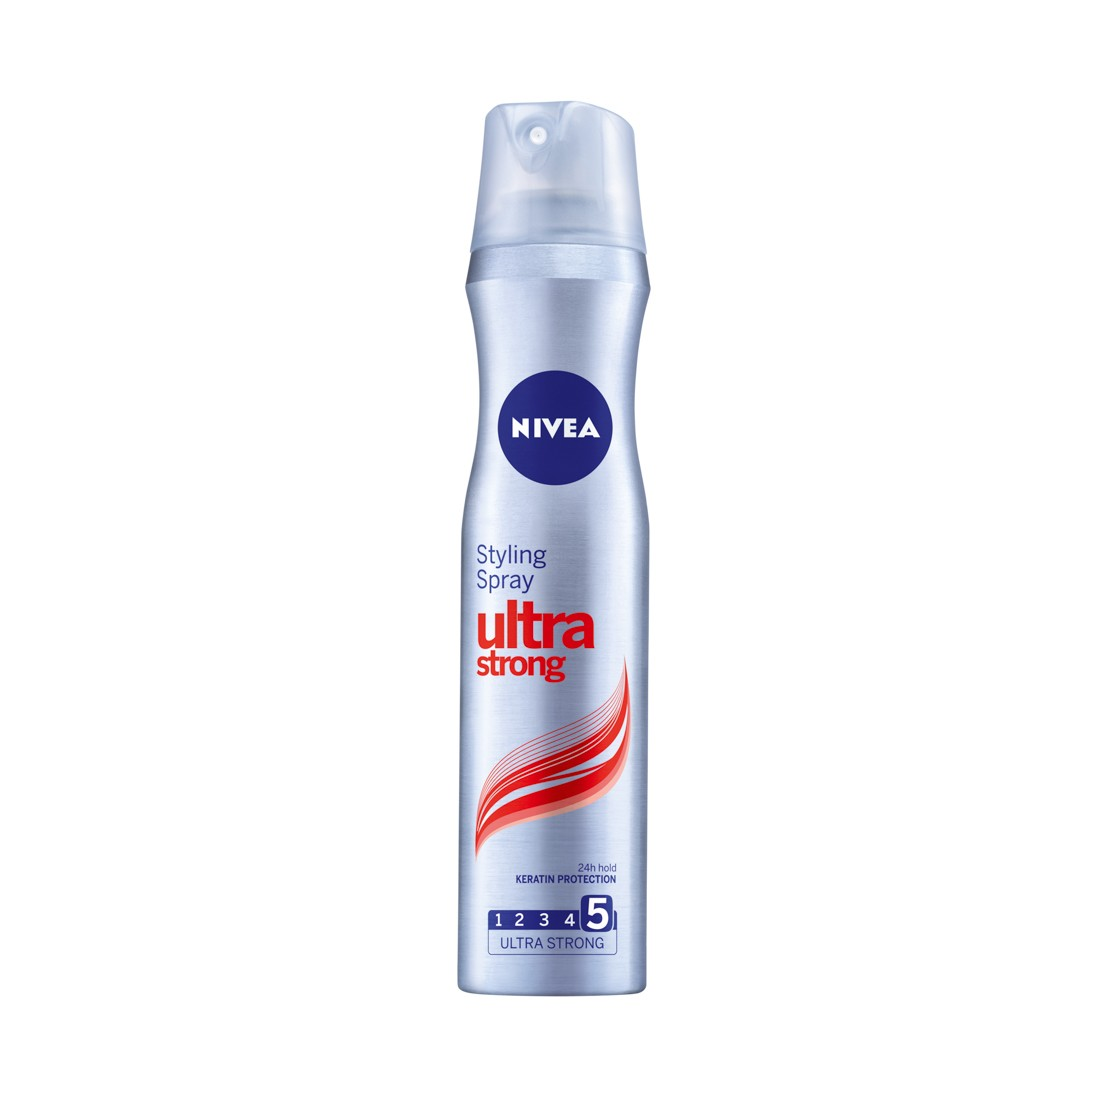 Nivea Styling Spray Ultra Strong 250ml